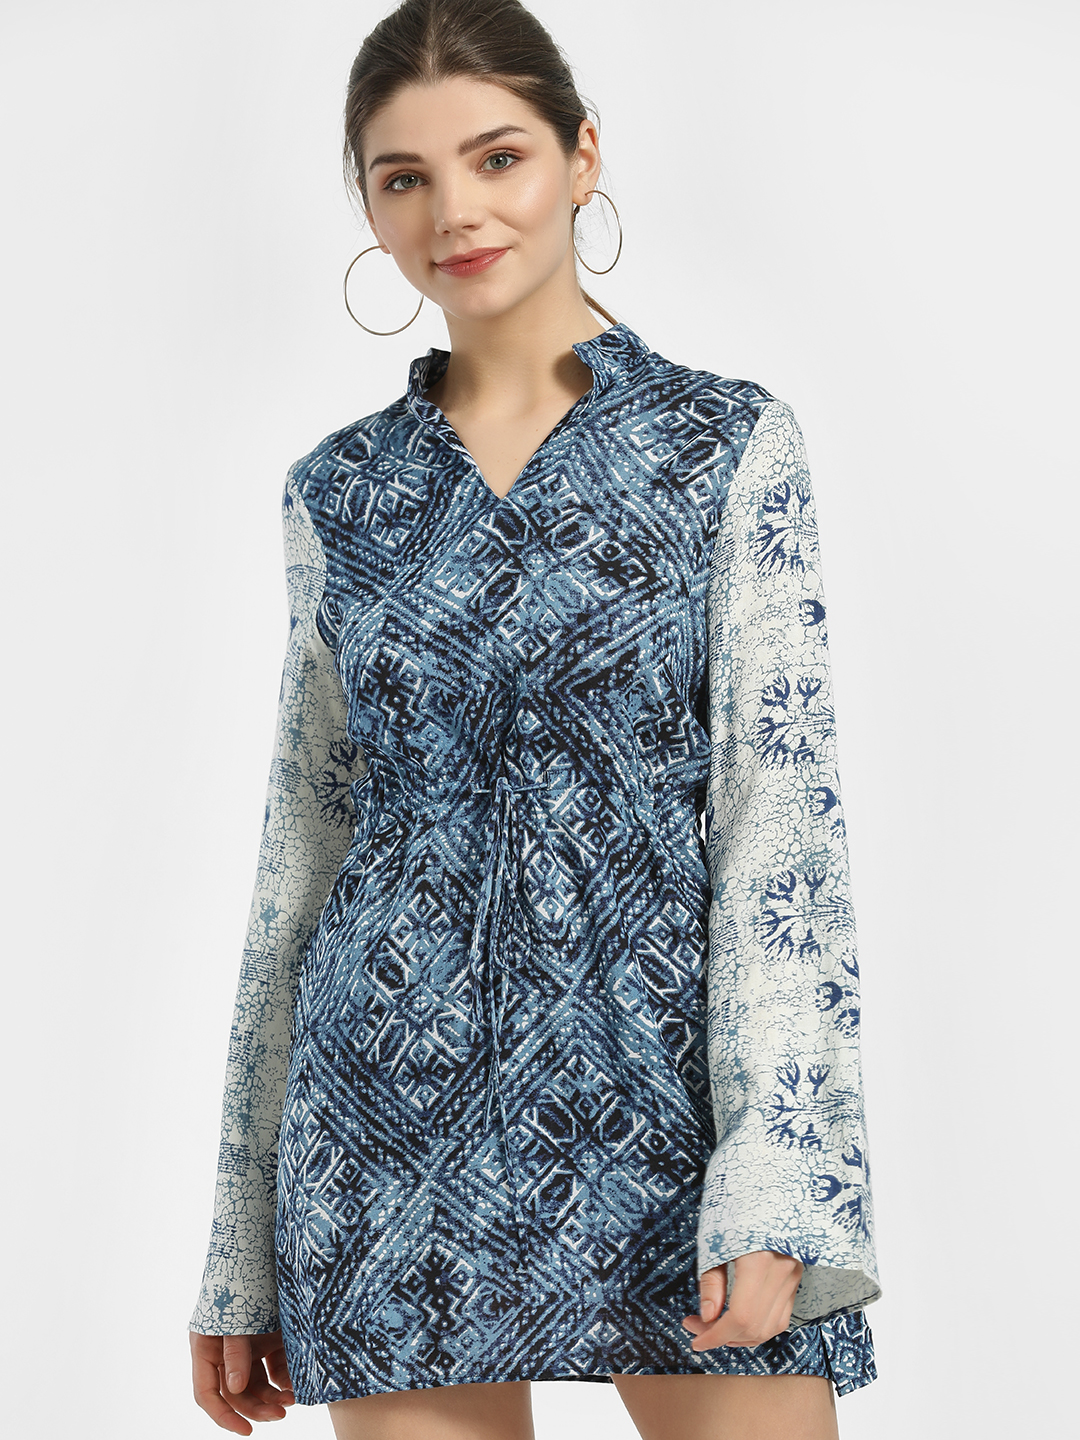 Magzayra Blue Bandhani Mixed-Print Shift Dress 1